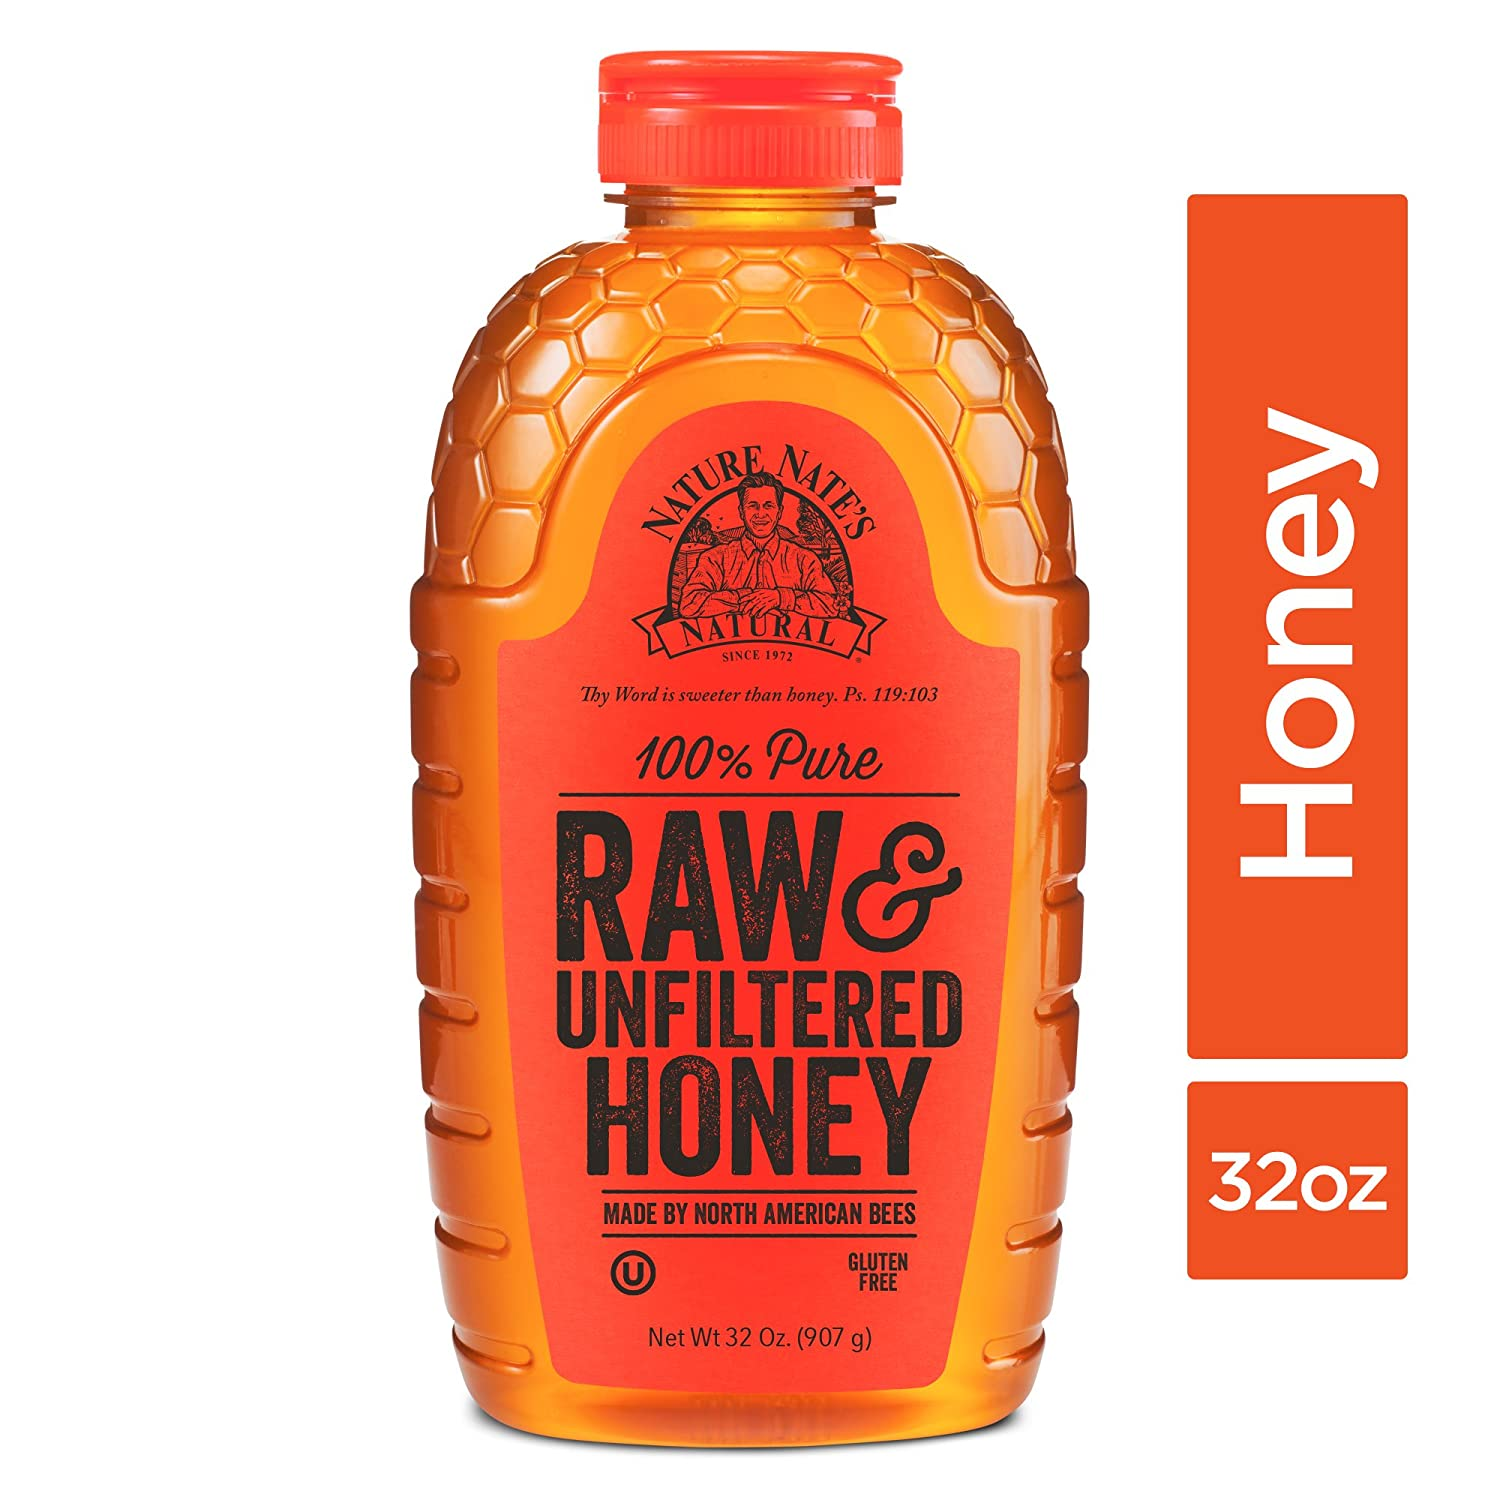 100% Pure Raw & Unfiltered Honey;